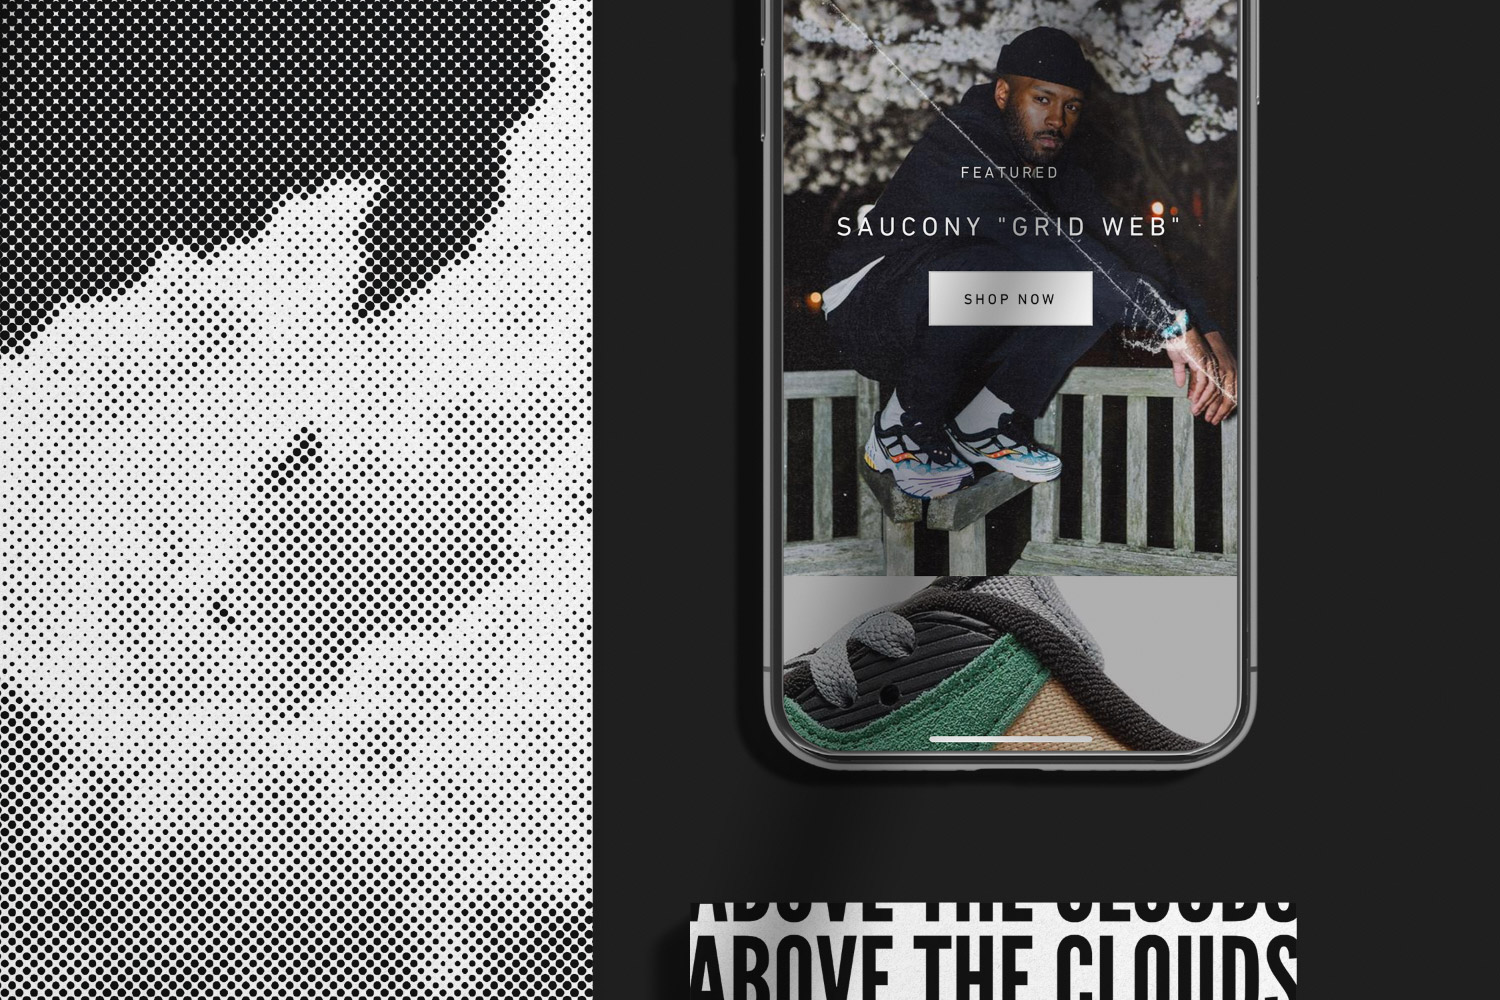 Nectar-&-Co-Above-The-Clouds-Branding-Mockup.jpg